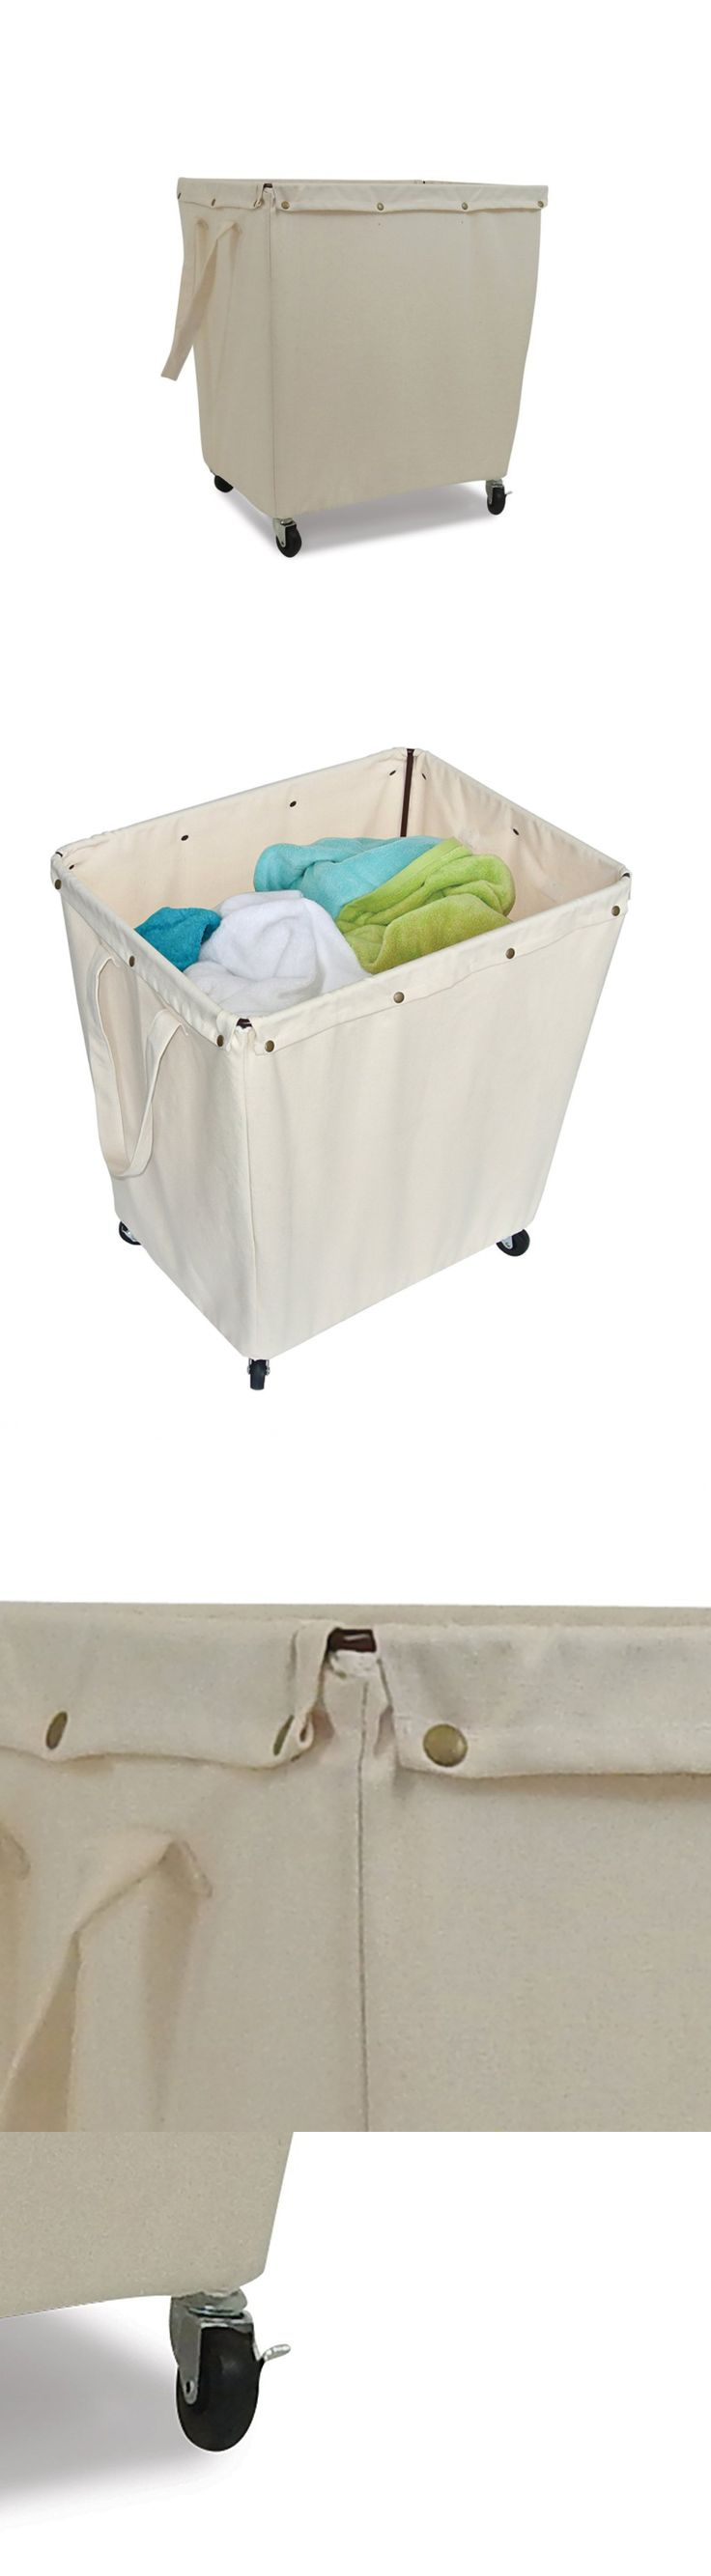 White tilt out clothes storage basket bin bathroom drawer ebay - Hampers 43517 Commercial Laundry Hamper With Wheels Canvas Bin Bag Storage Industrial Buy